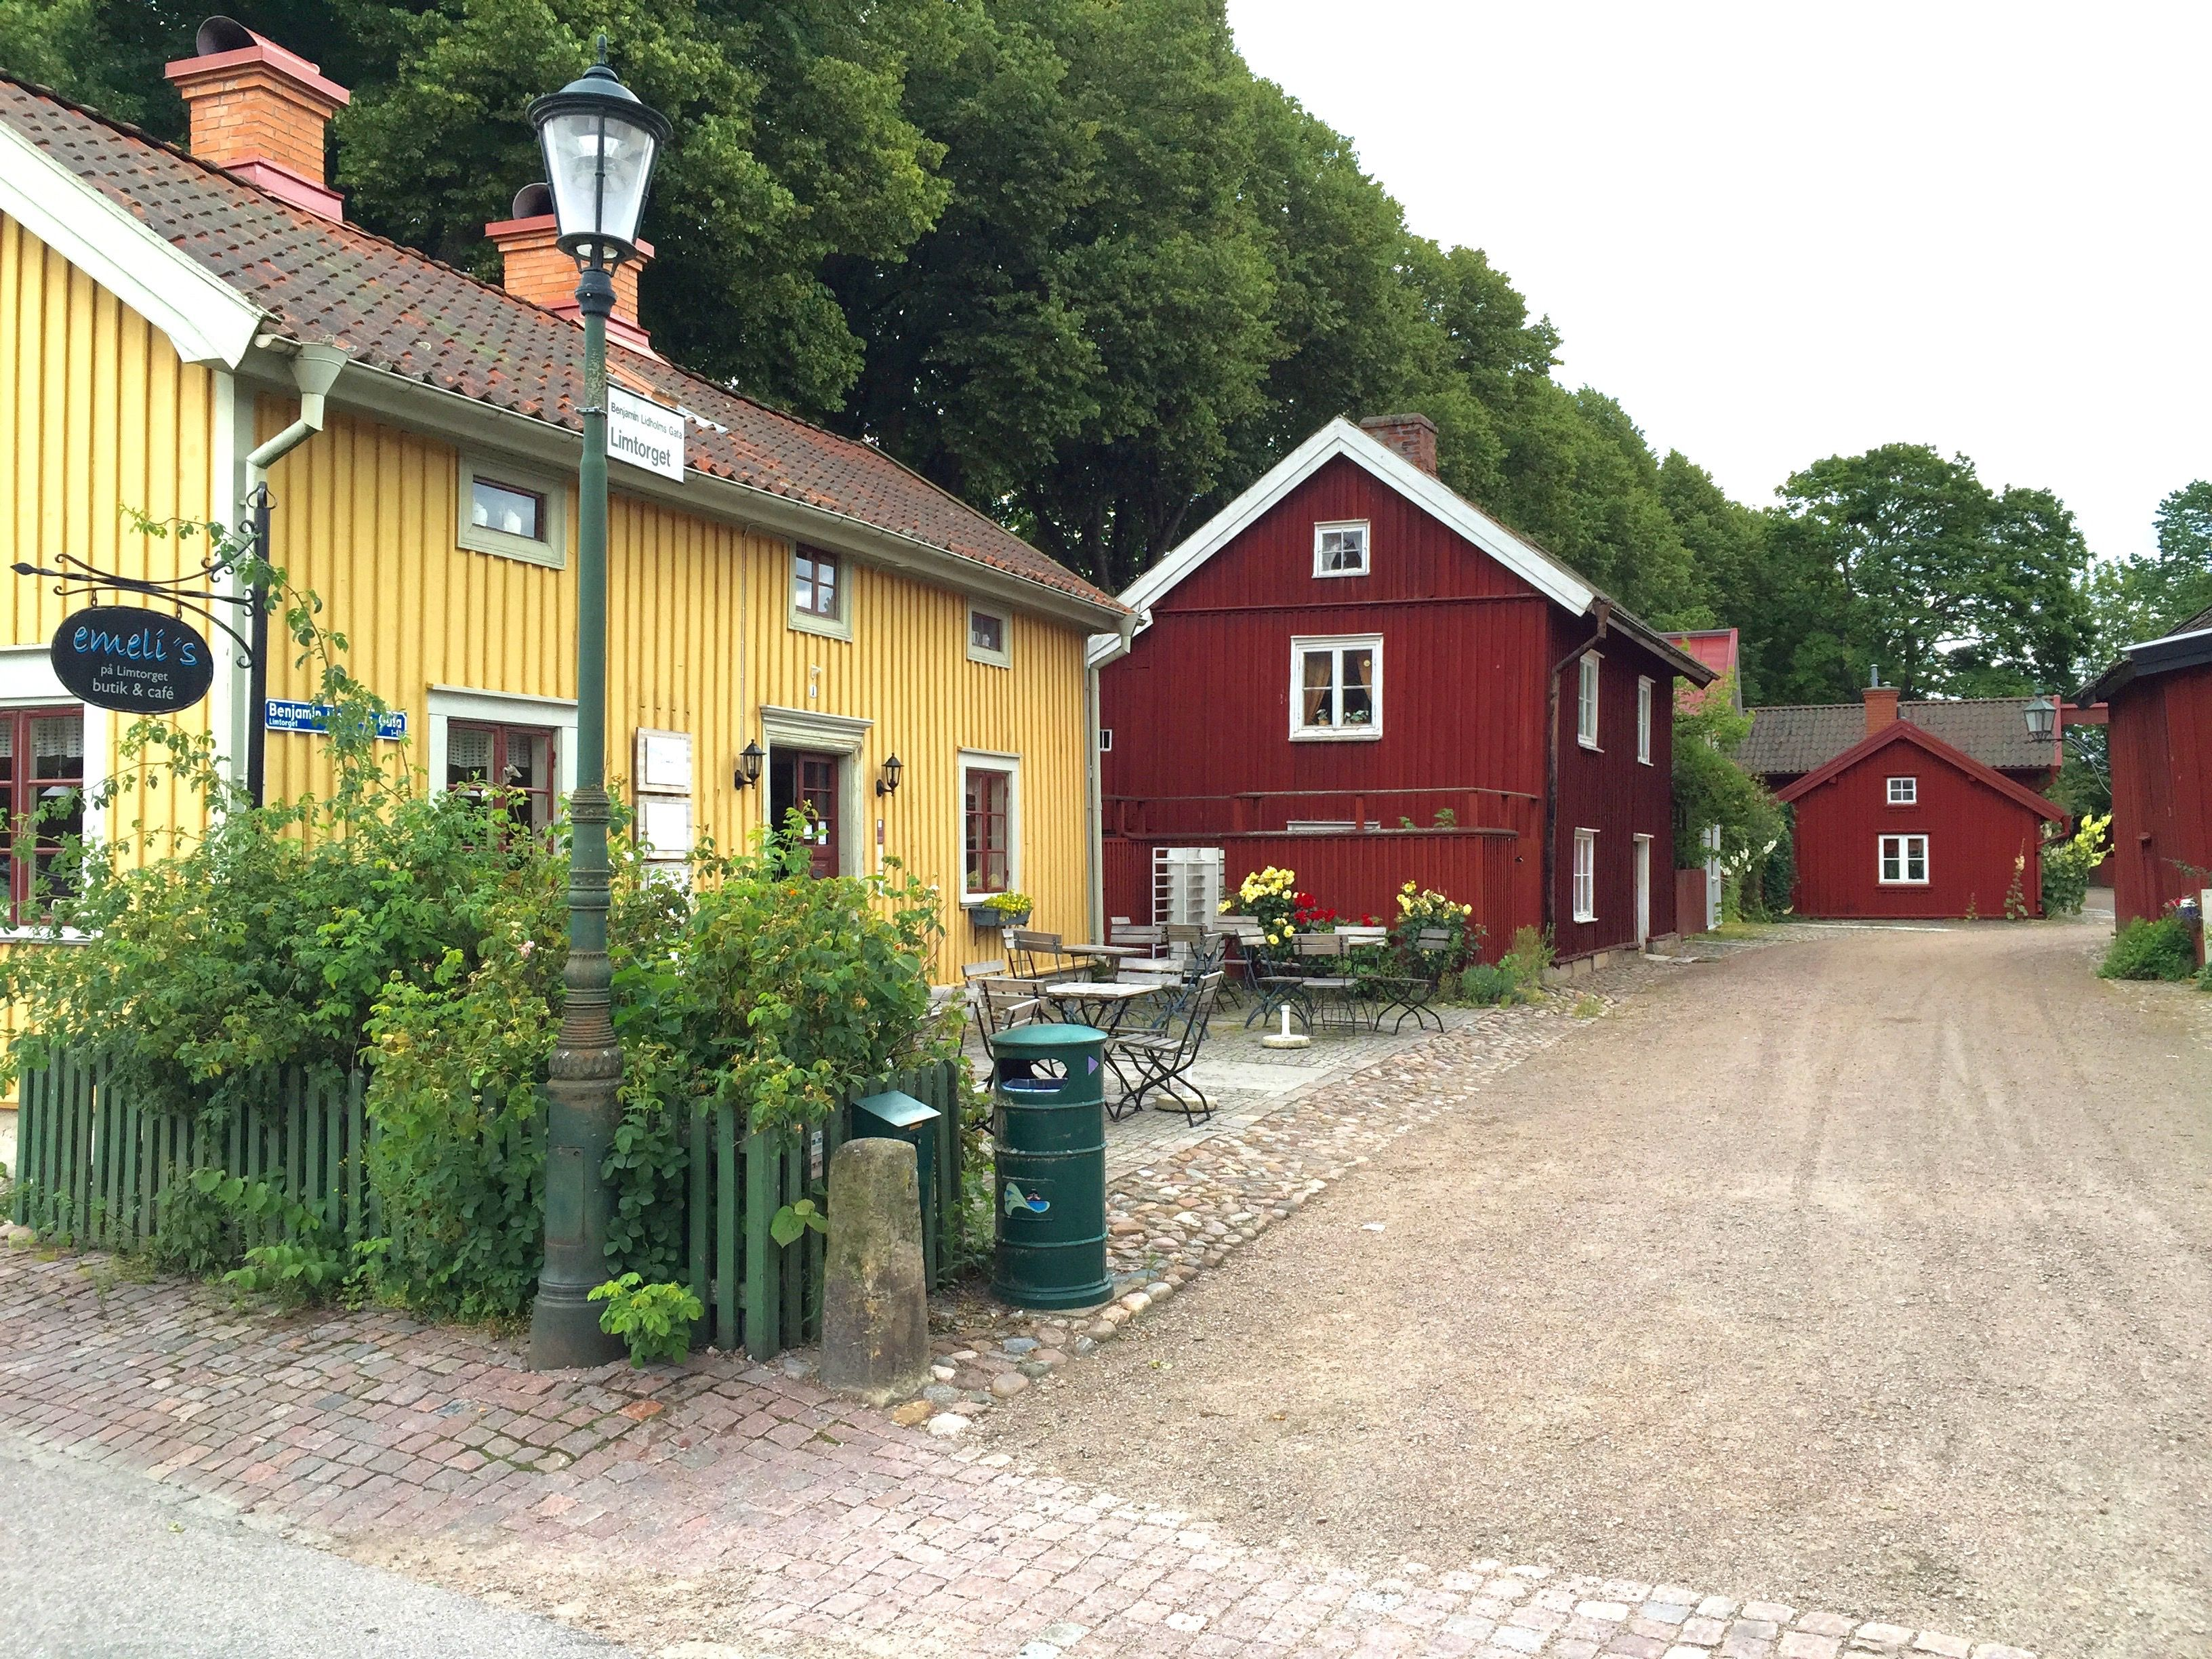 Old town in Lidköping with Emeli s Cafe to the left in the yellow